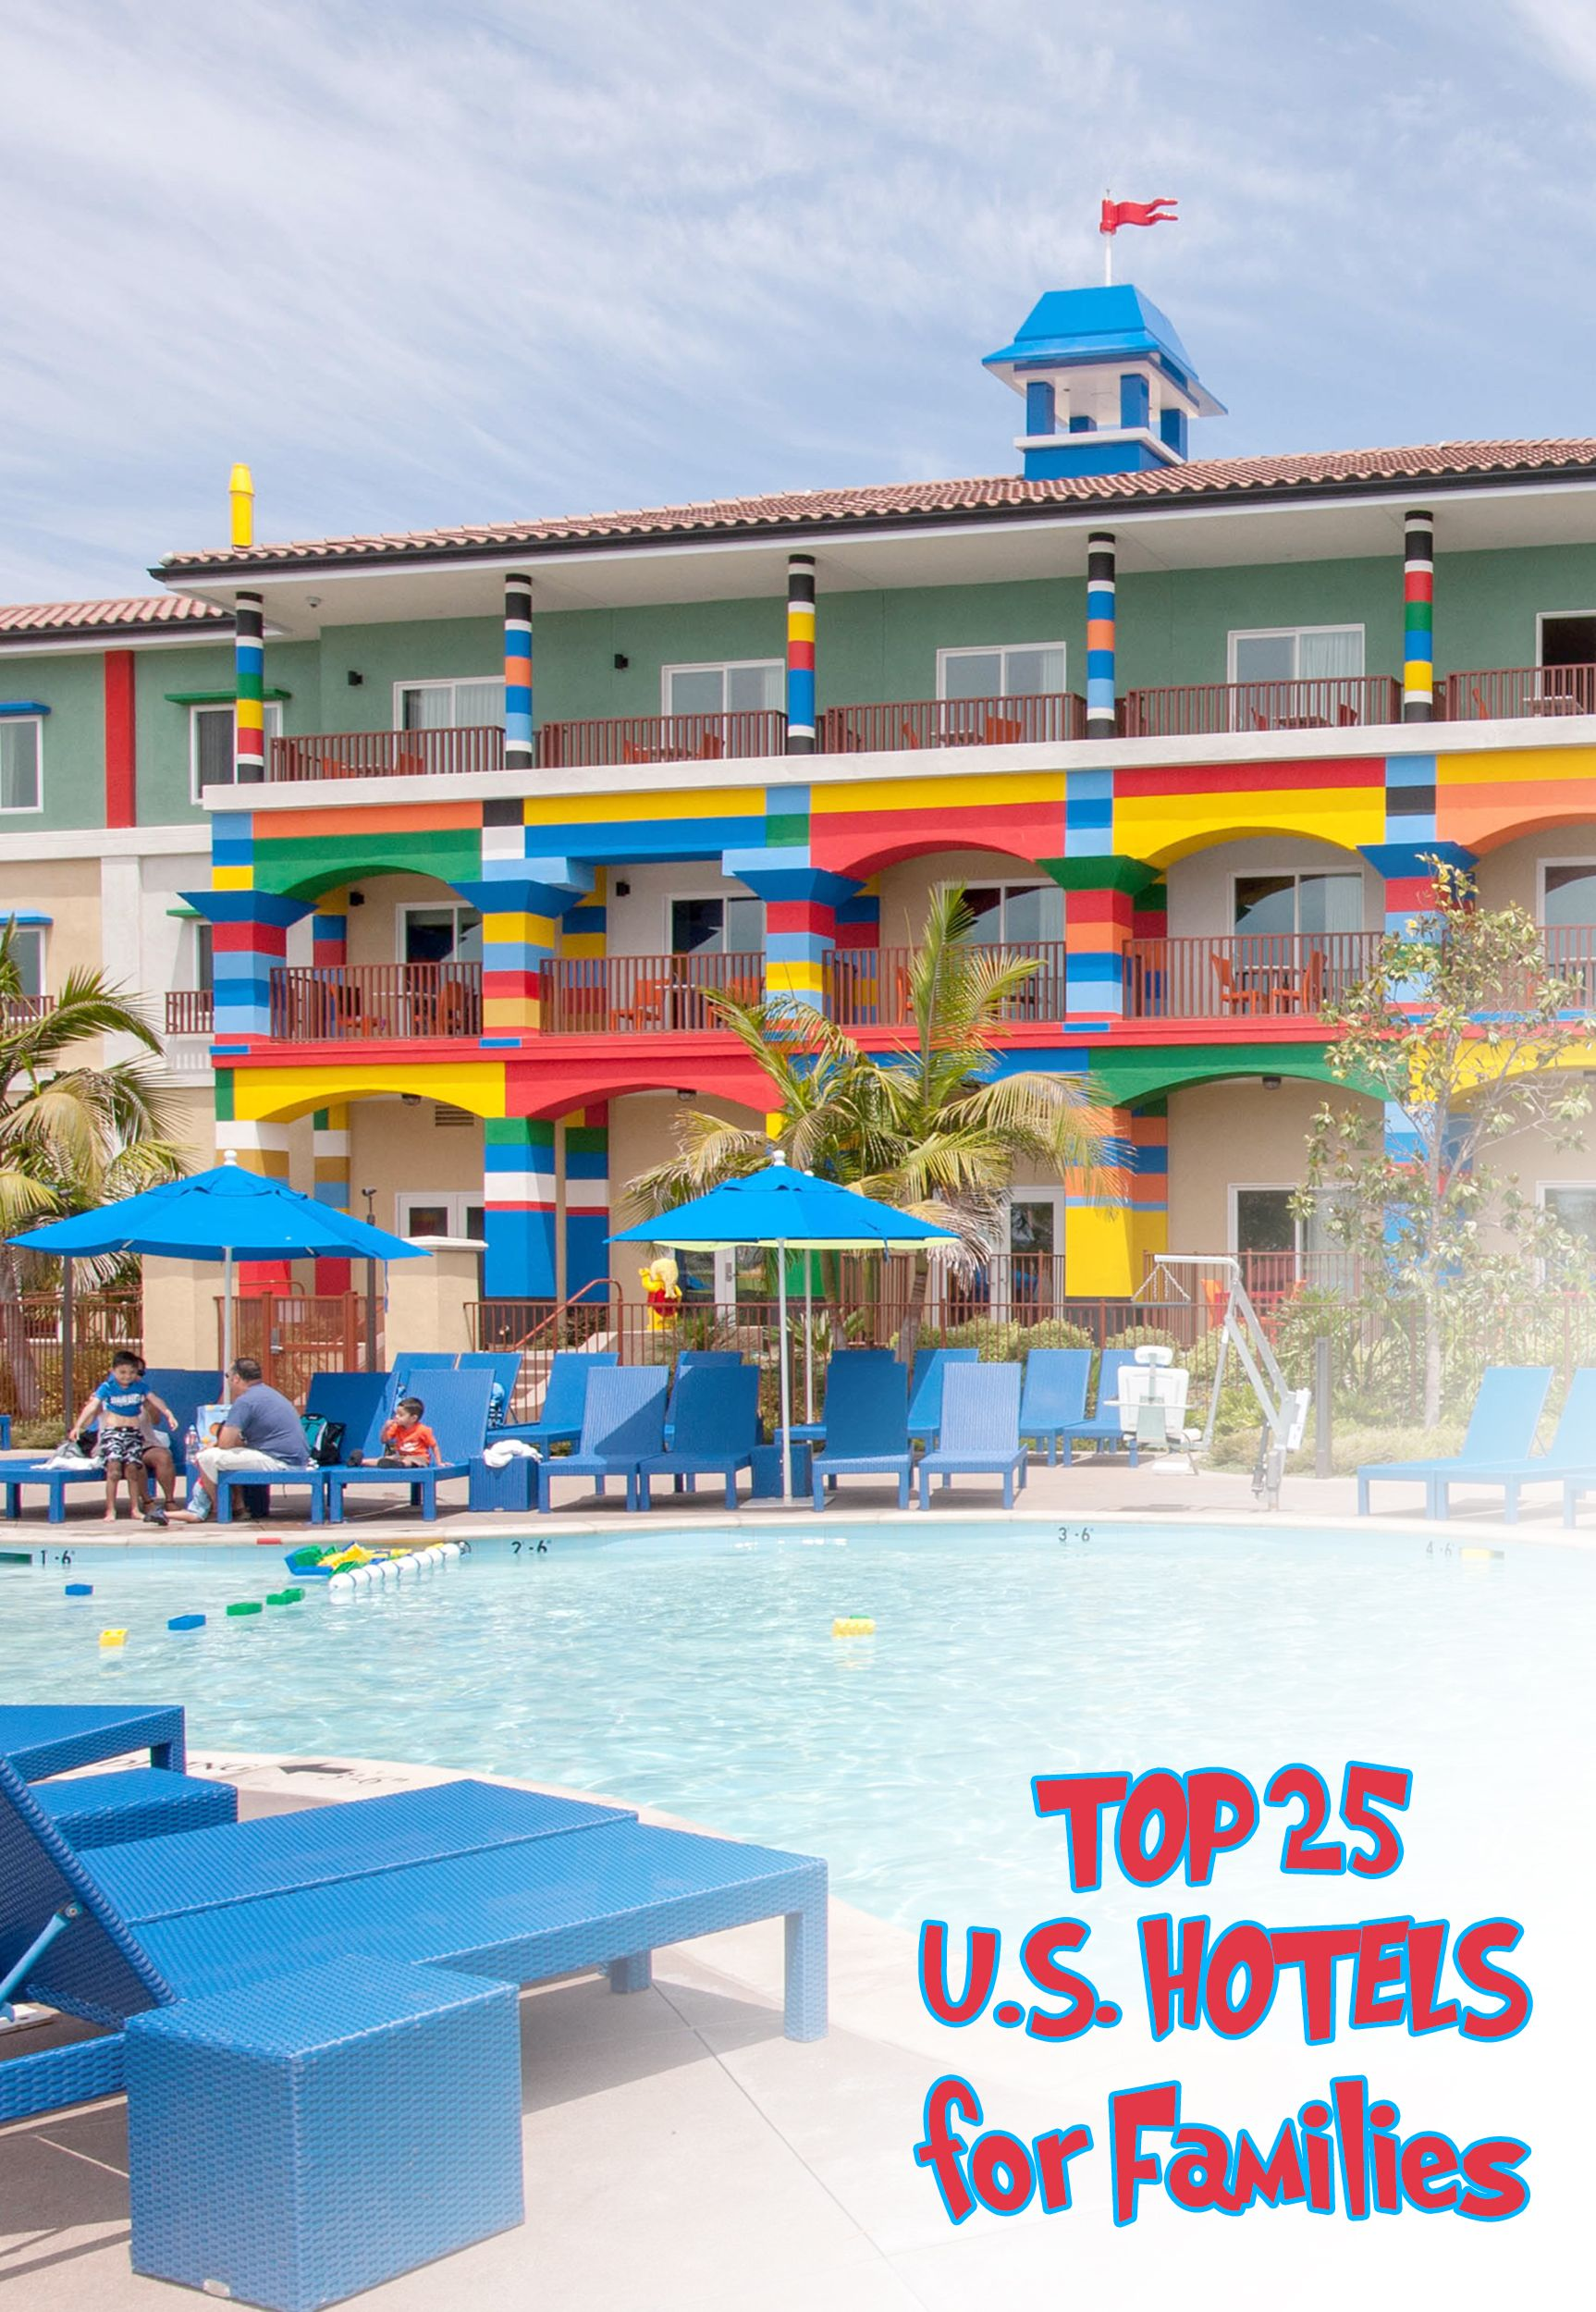 The Top Family Hotel In The World (and America!) Is